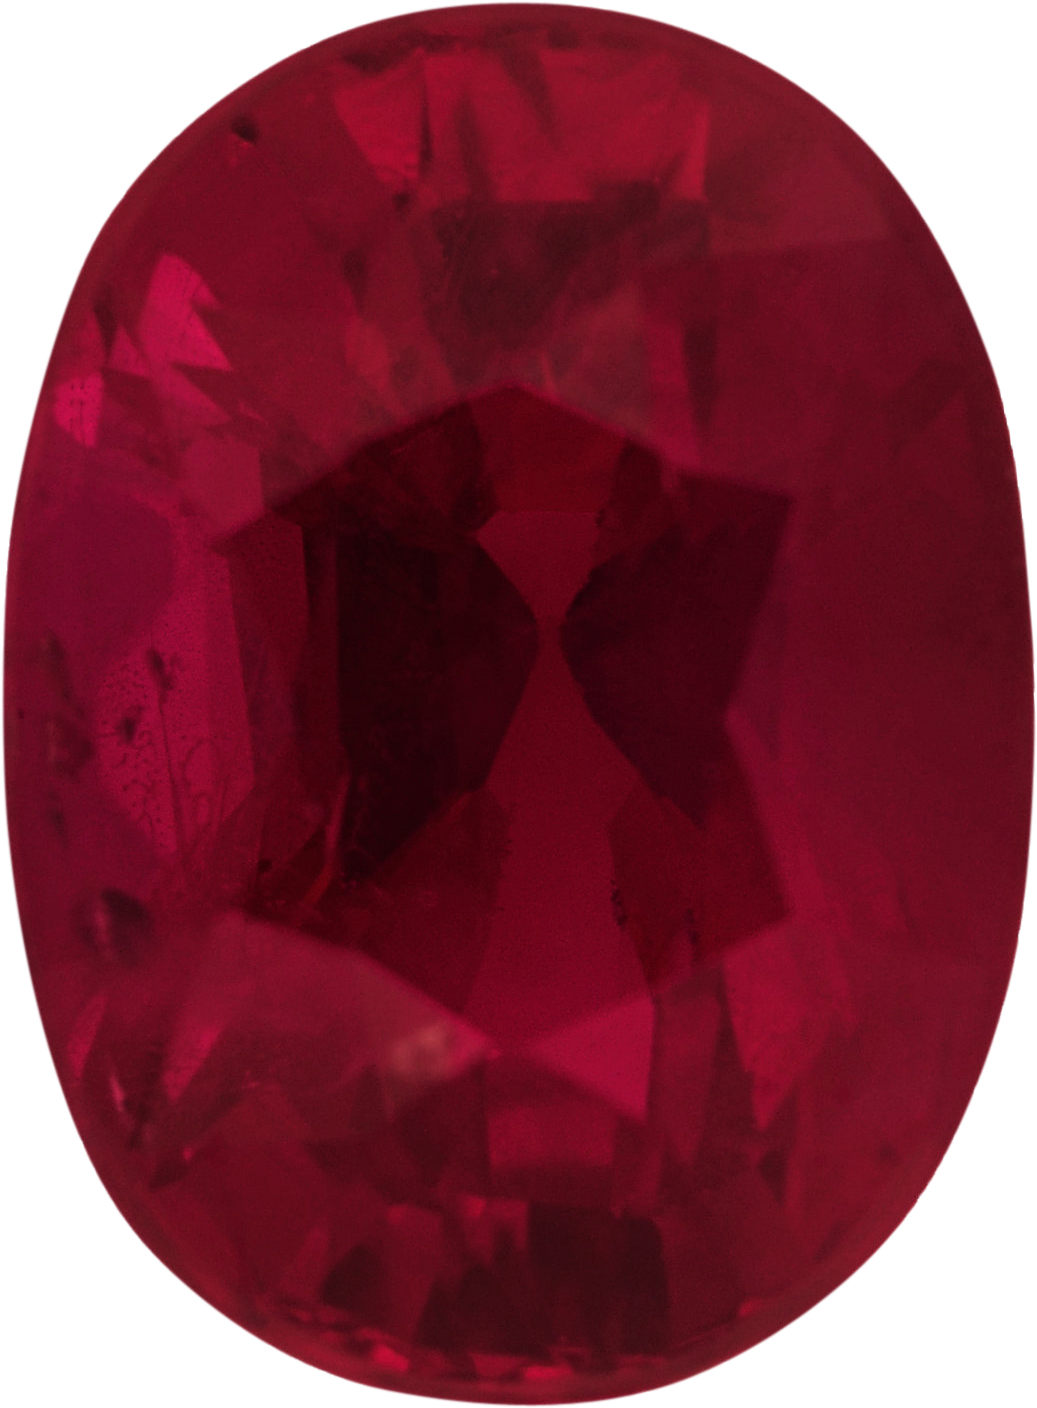 Beautiful Loose Ruby Gem in Oval Cut, Deep  Red Color, 6.83 x 5.02 mm, 1.14 carats